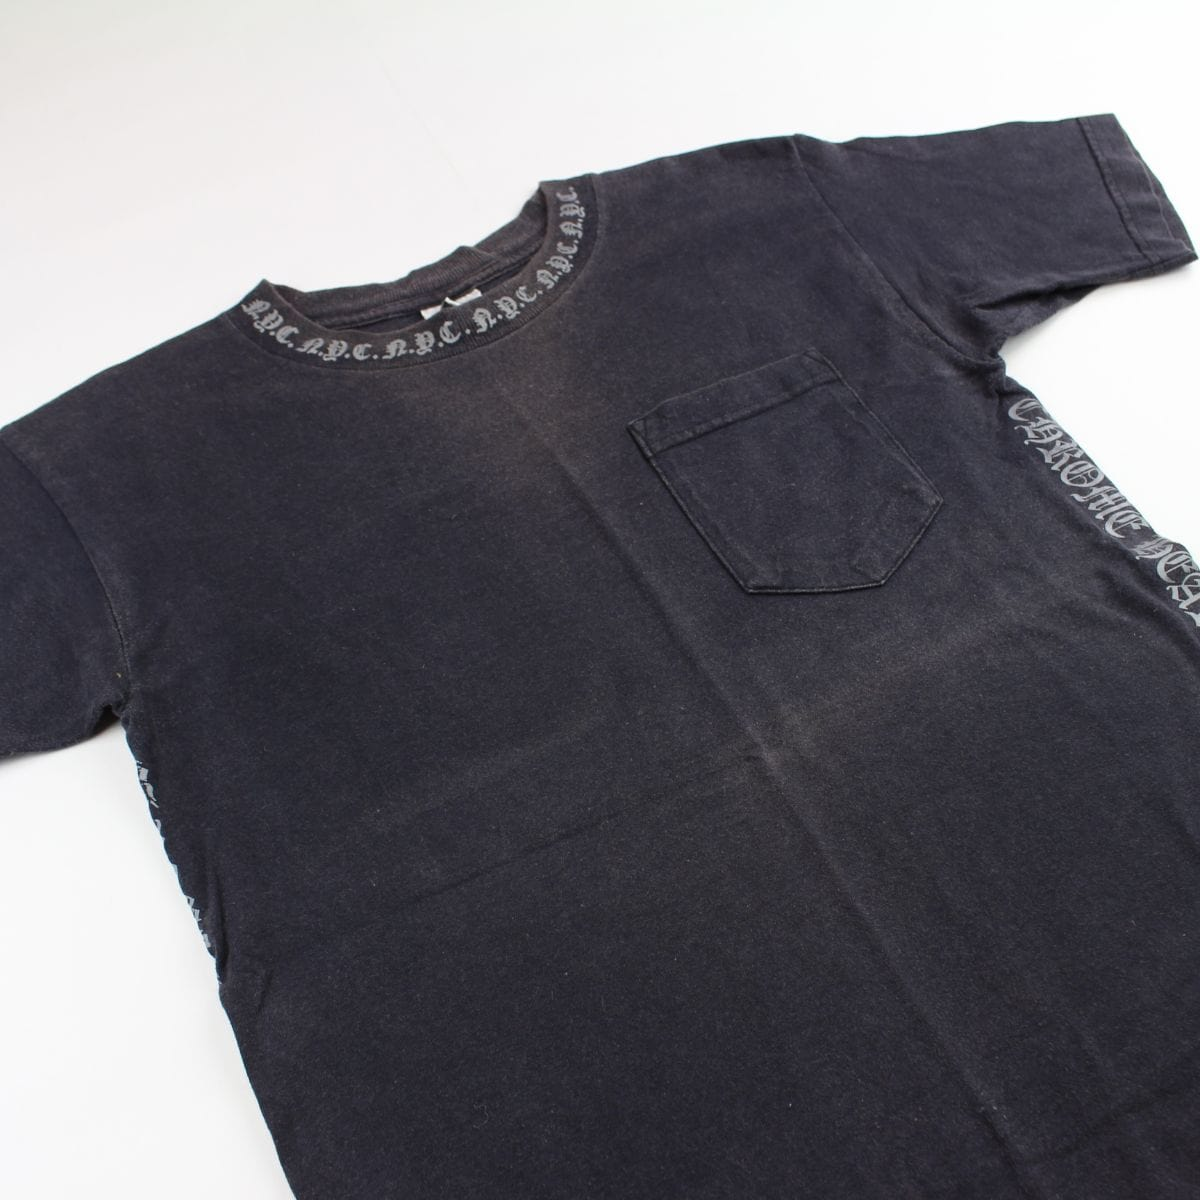 chrome hearts neck print tee black - SaruGeneral